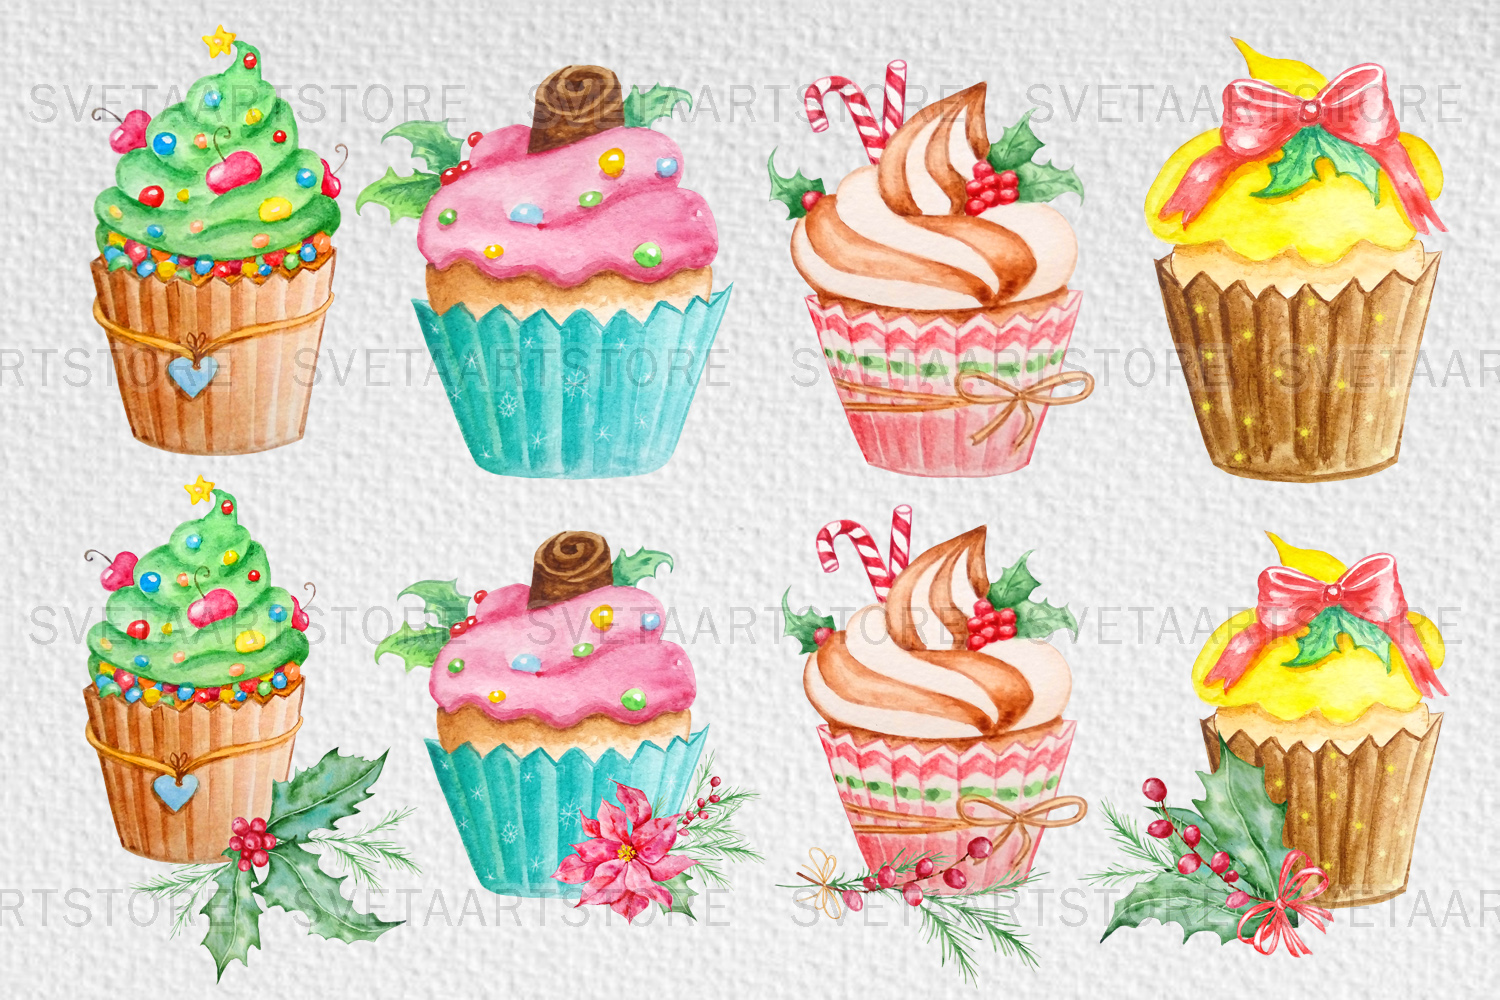 Christmas cupcakes clipart, watercolor cake example image 3